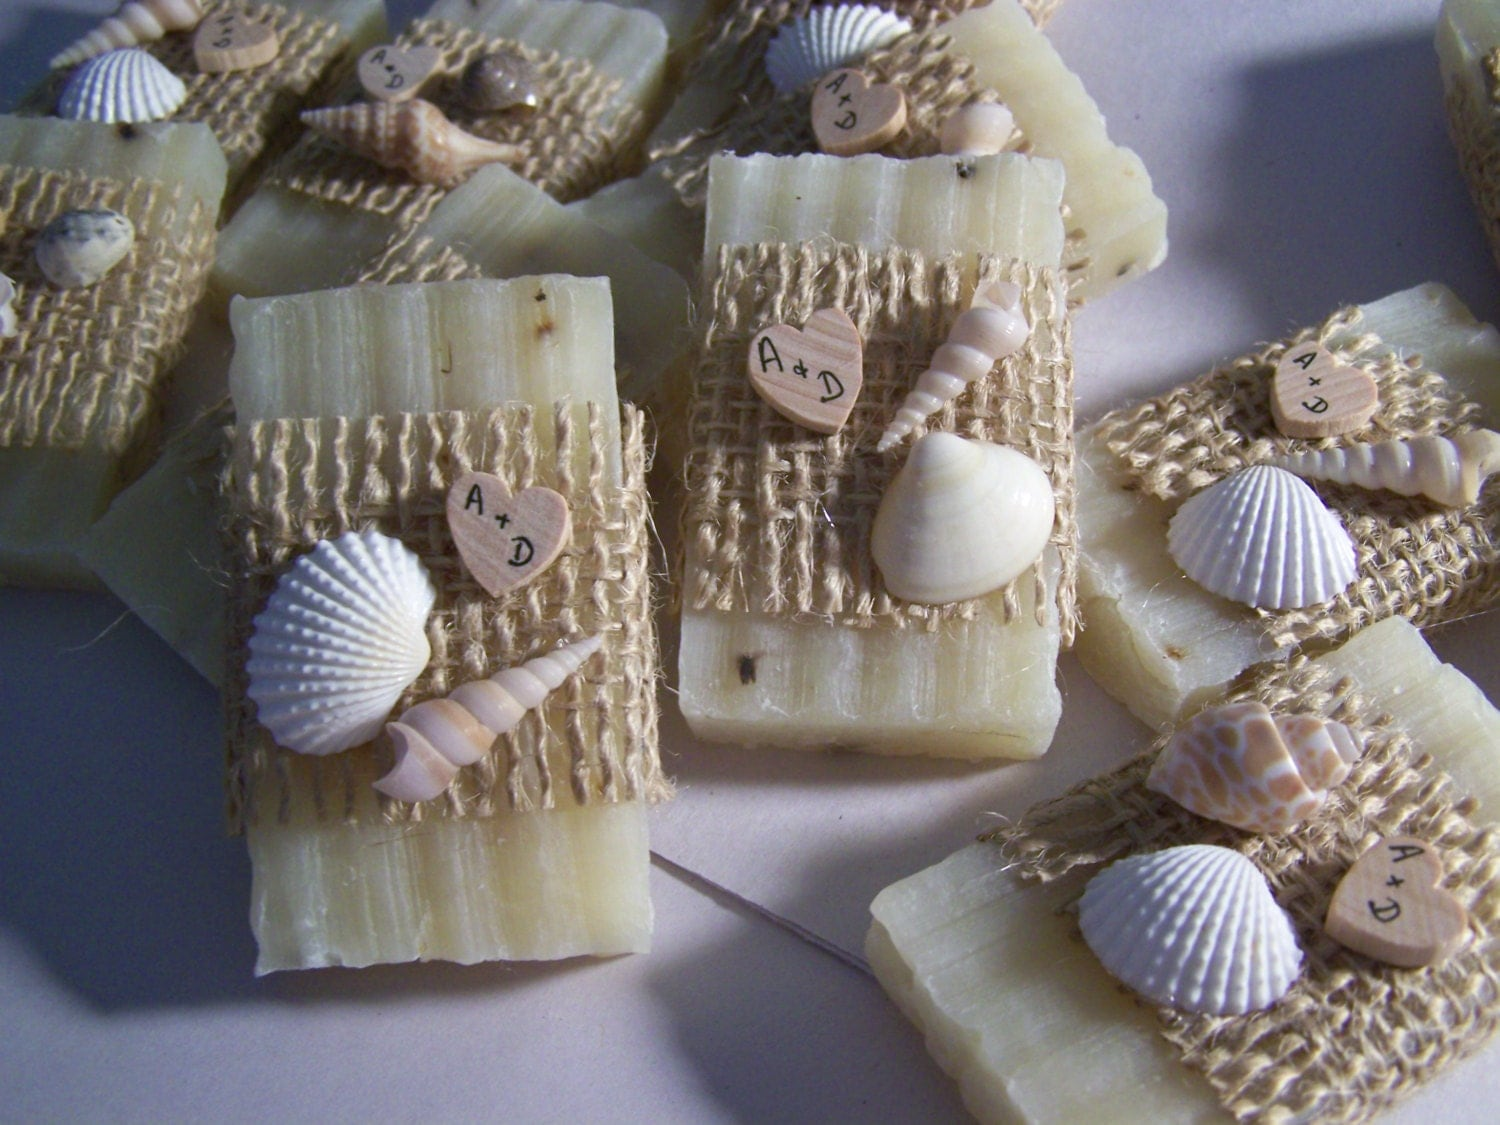 Gift From The Sea Wedding Reading: Beach Wedding Favors 30 Bridal Shower Favors Soaps Seashells